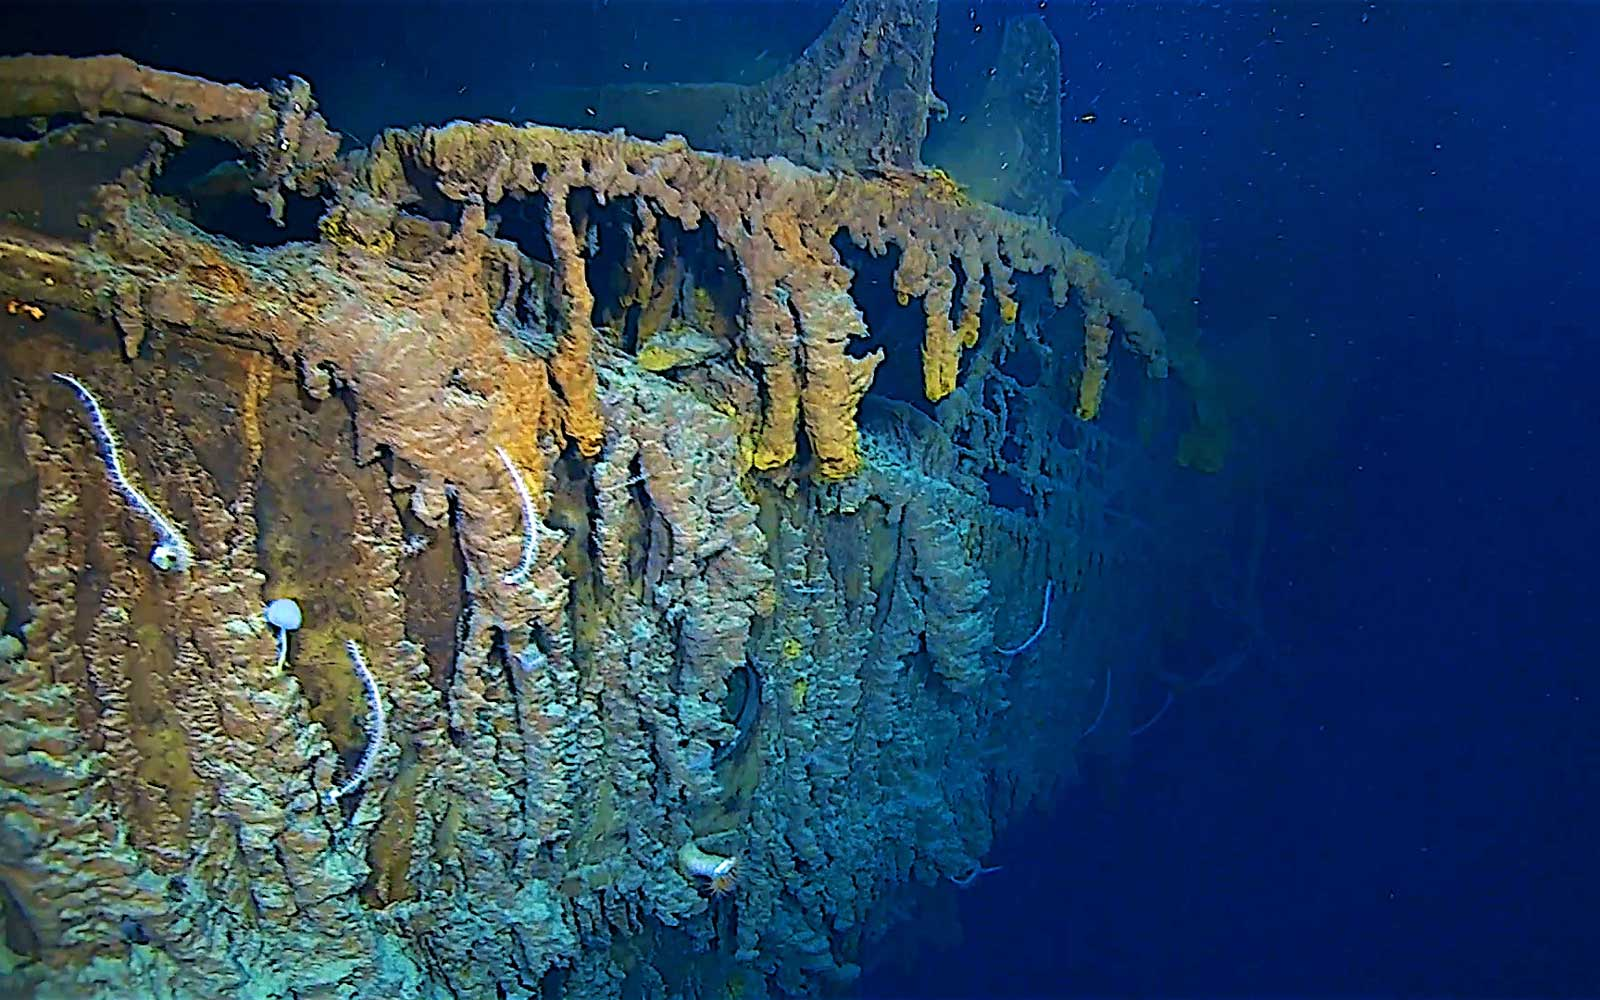 Divers Revisited the Titanic for the First Time in 14 Years — and What They Found Was 'Shocking'